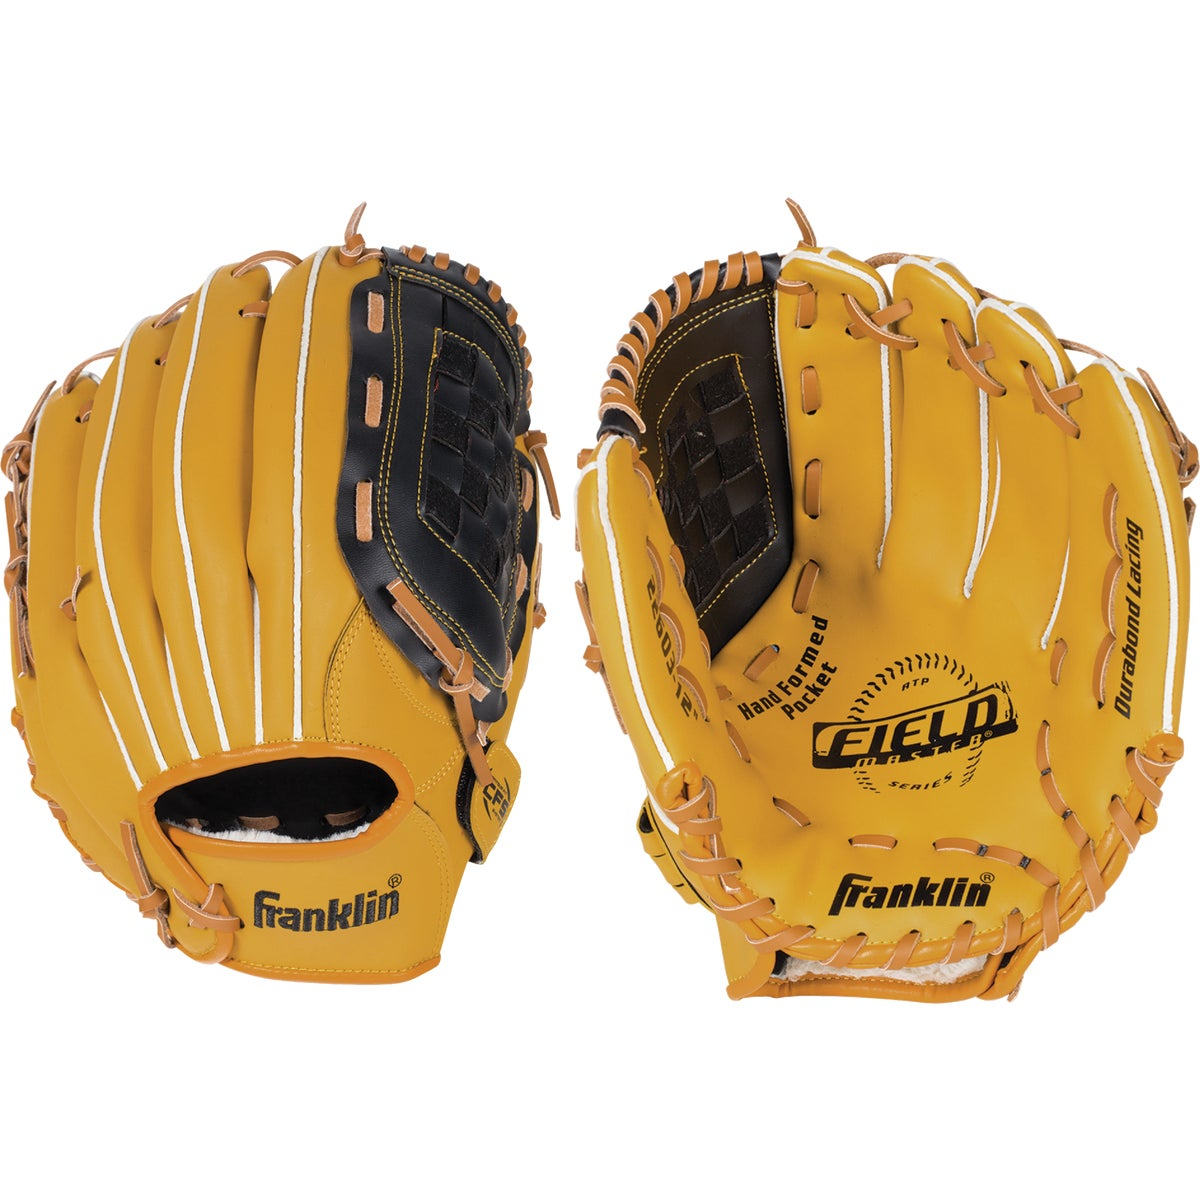 "12"" BASEBALL GLOVE - 22404 by Franklin Sports"